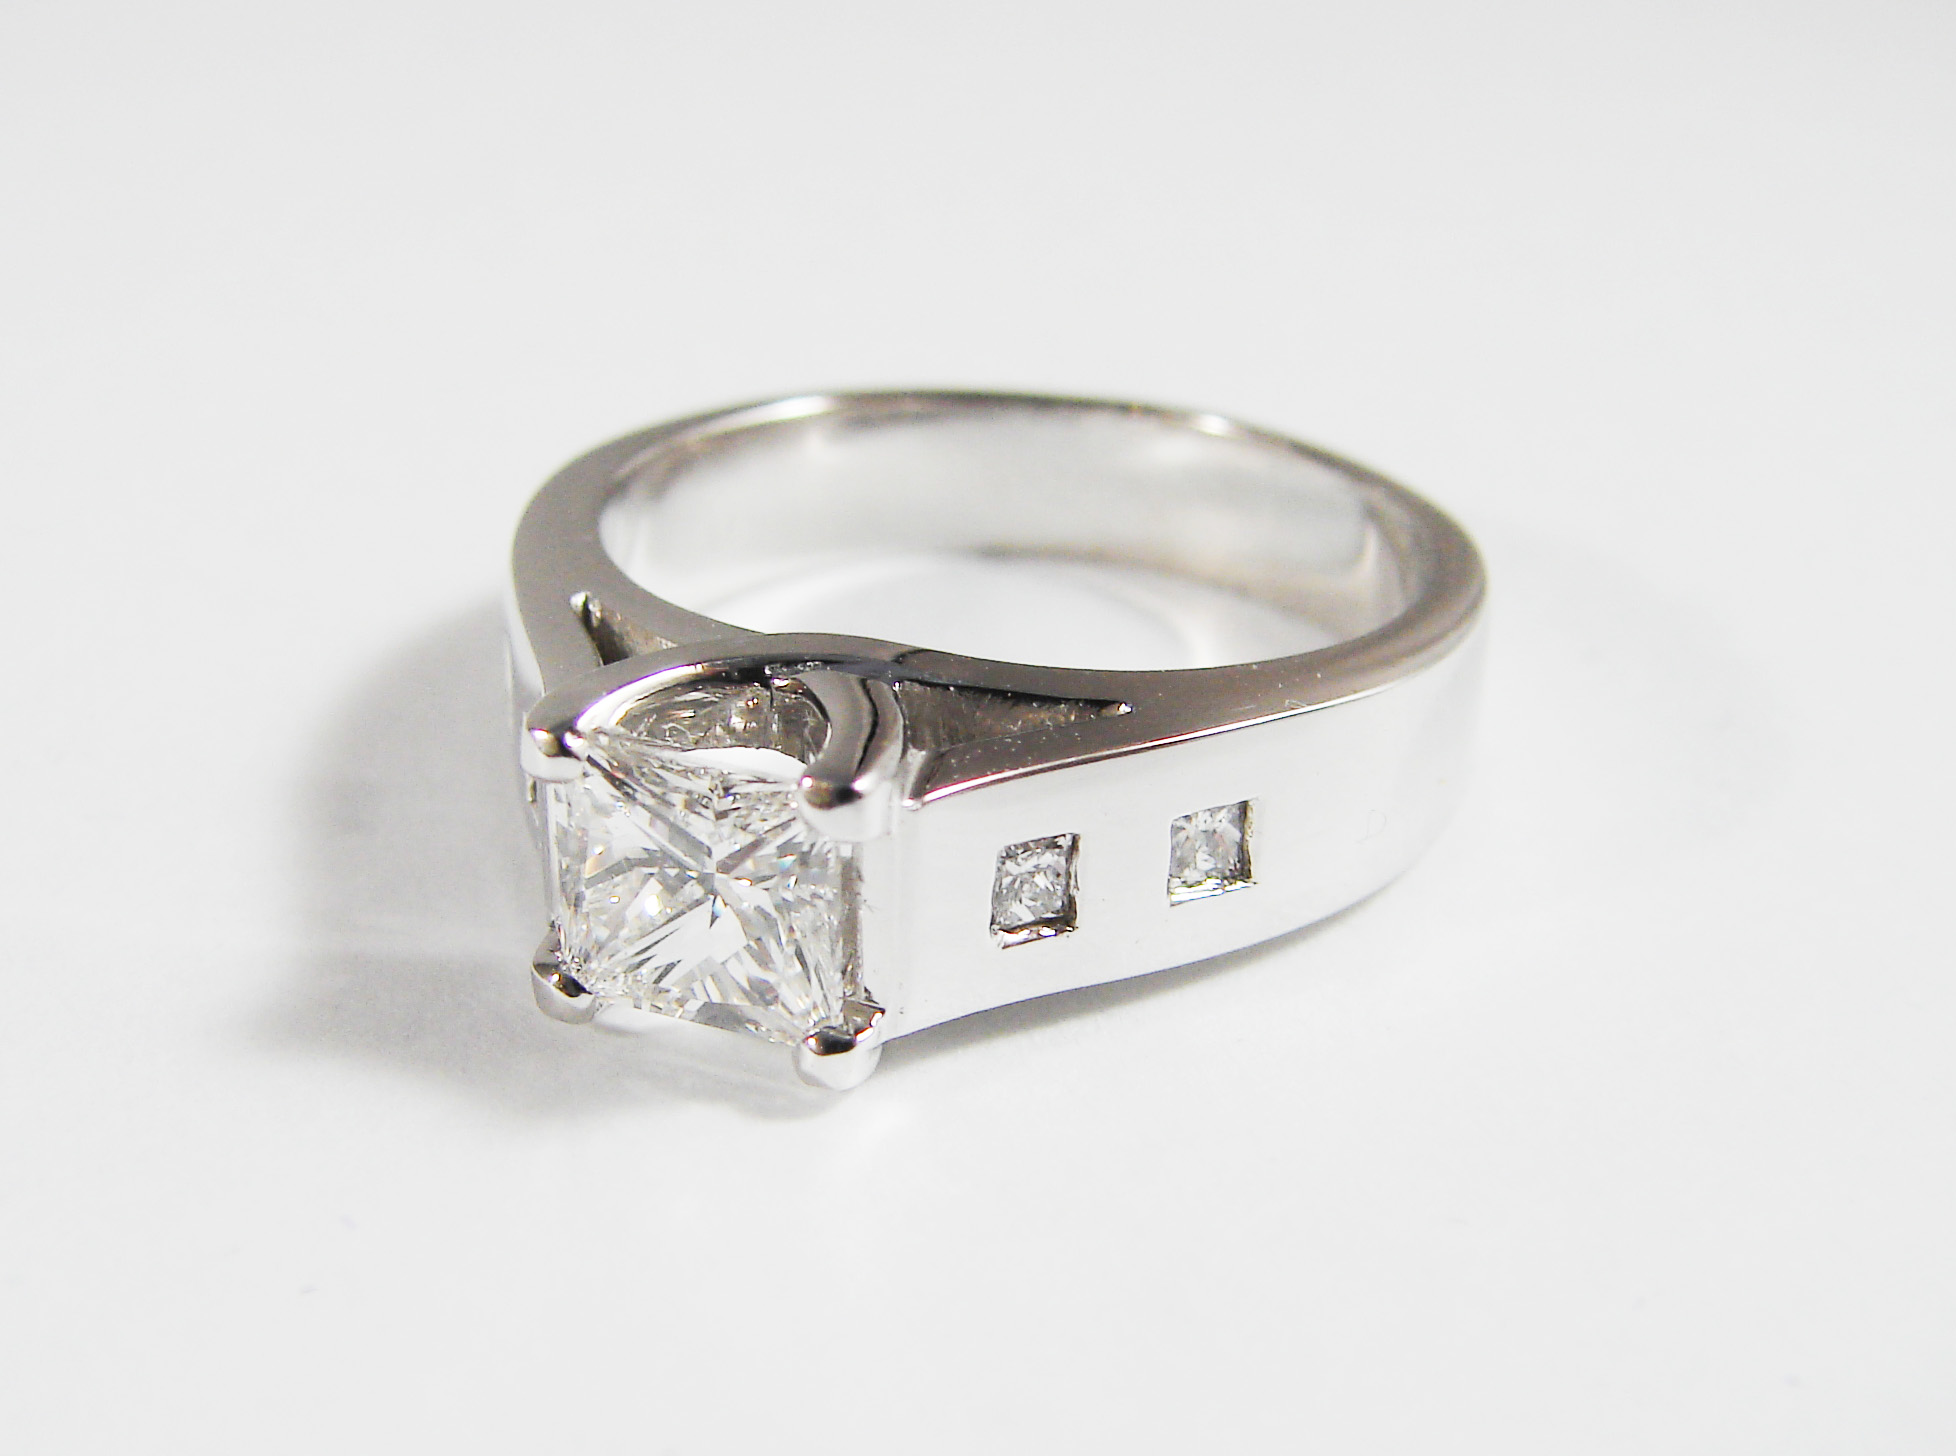 Princess cut 1.0ct diamond center stone, 0.28tcw diamond side stones, set in 14k white gold.  Starting at $6800 for this stone size  Can be customizable with any stone, size, metal etc.